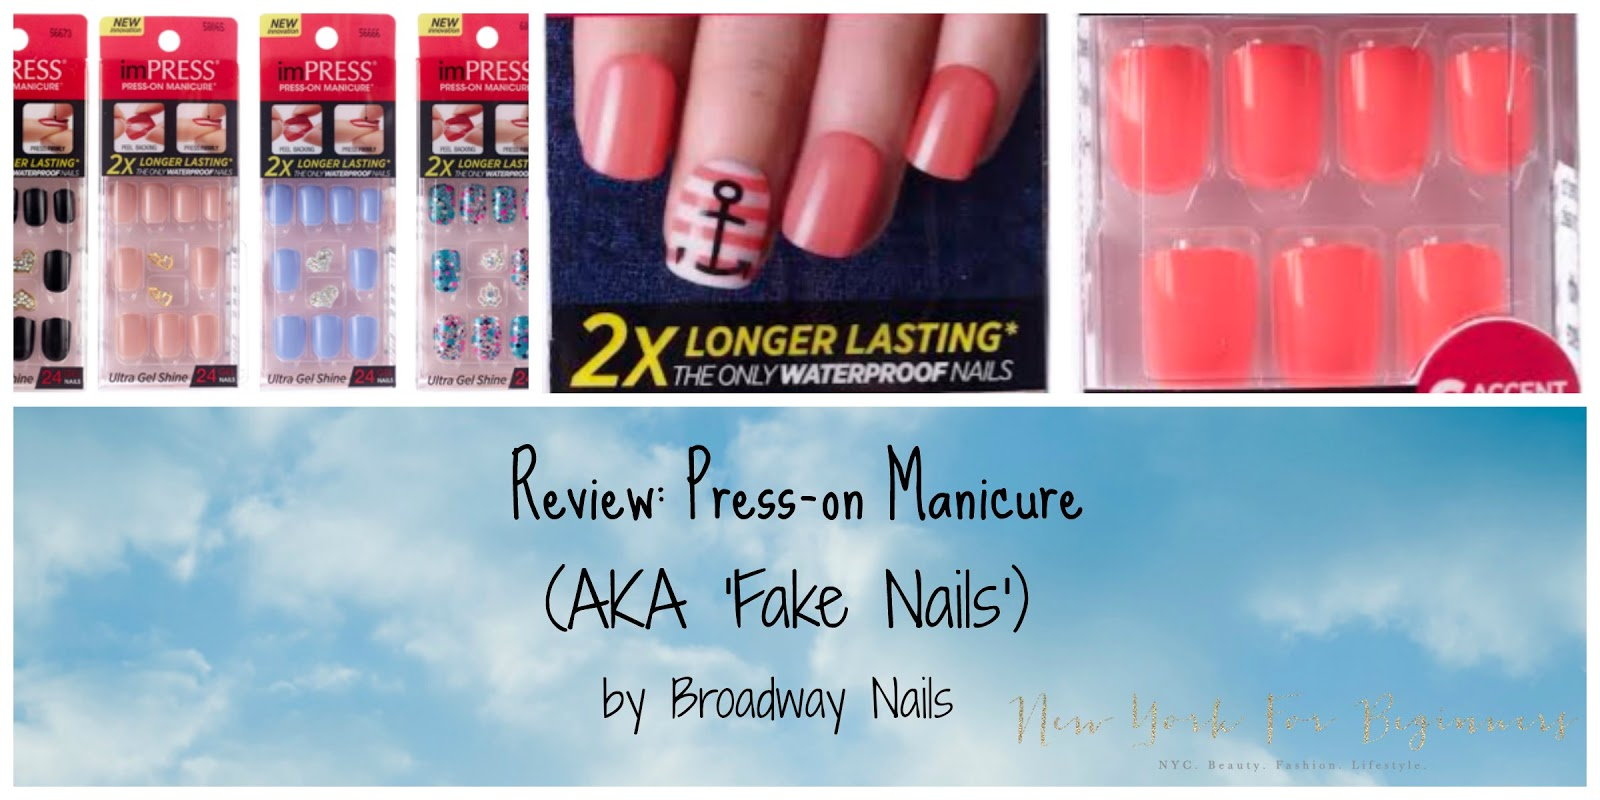 Why I got hooked up on fake press-on nails by Kiss | New York For ...